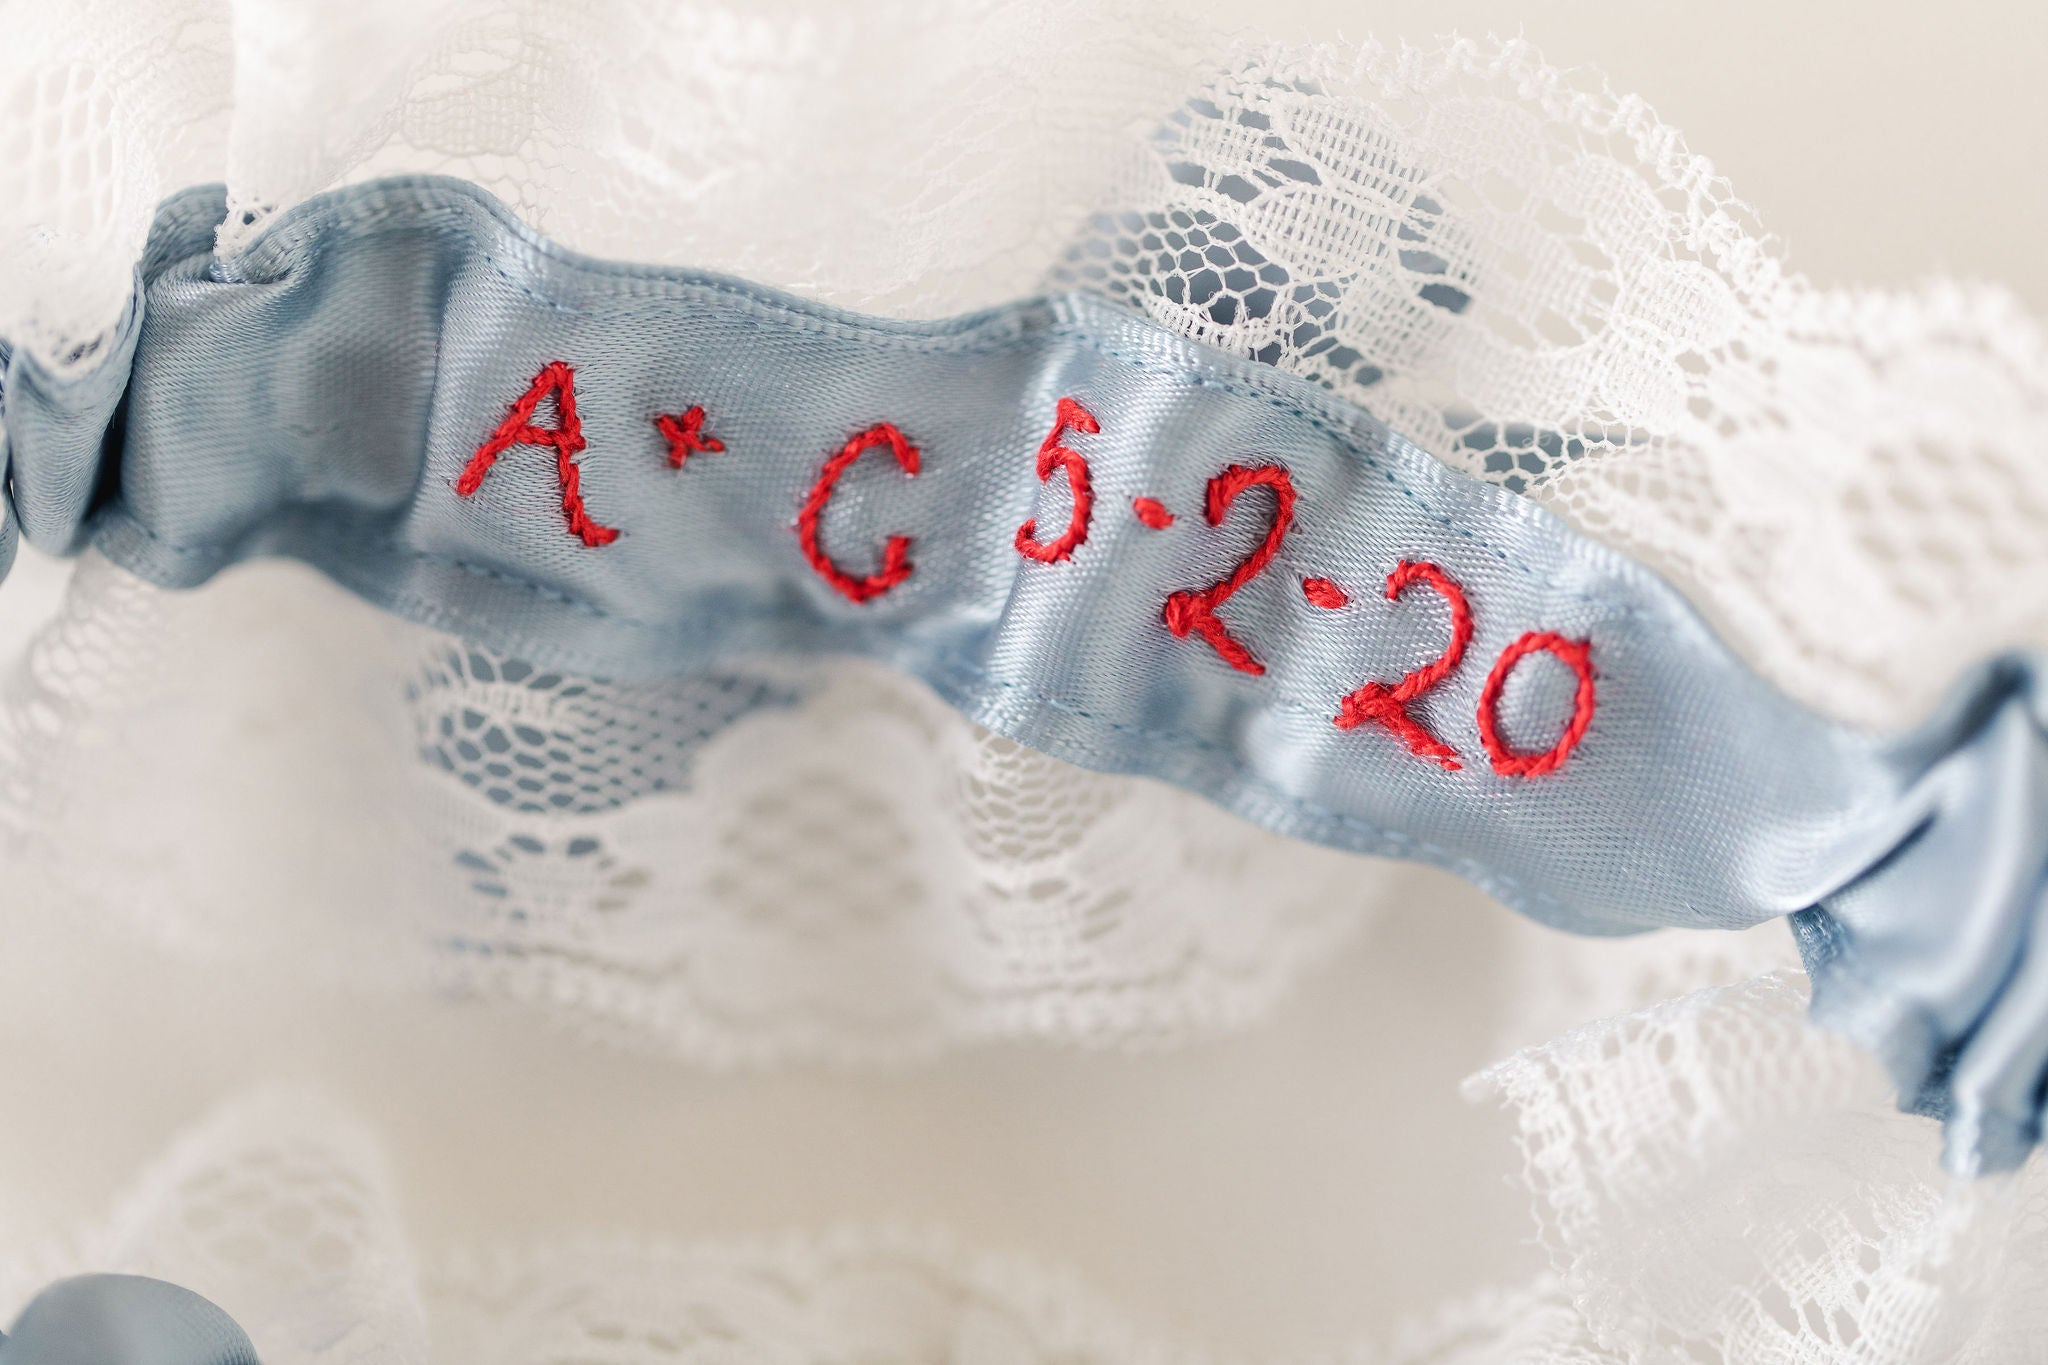 custom lace wedding garter set with personalized embroidery handmade by The Garter Girl